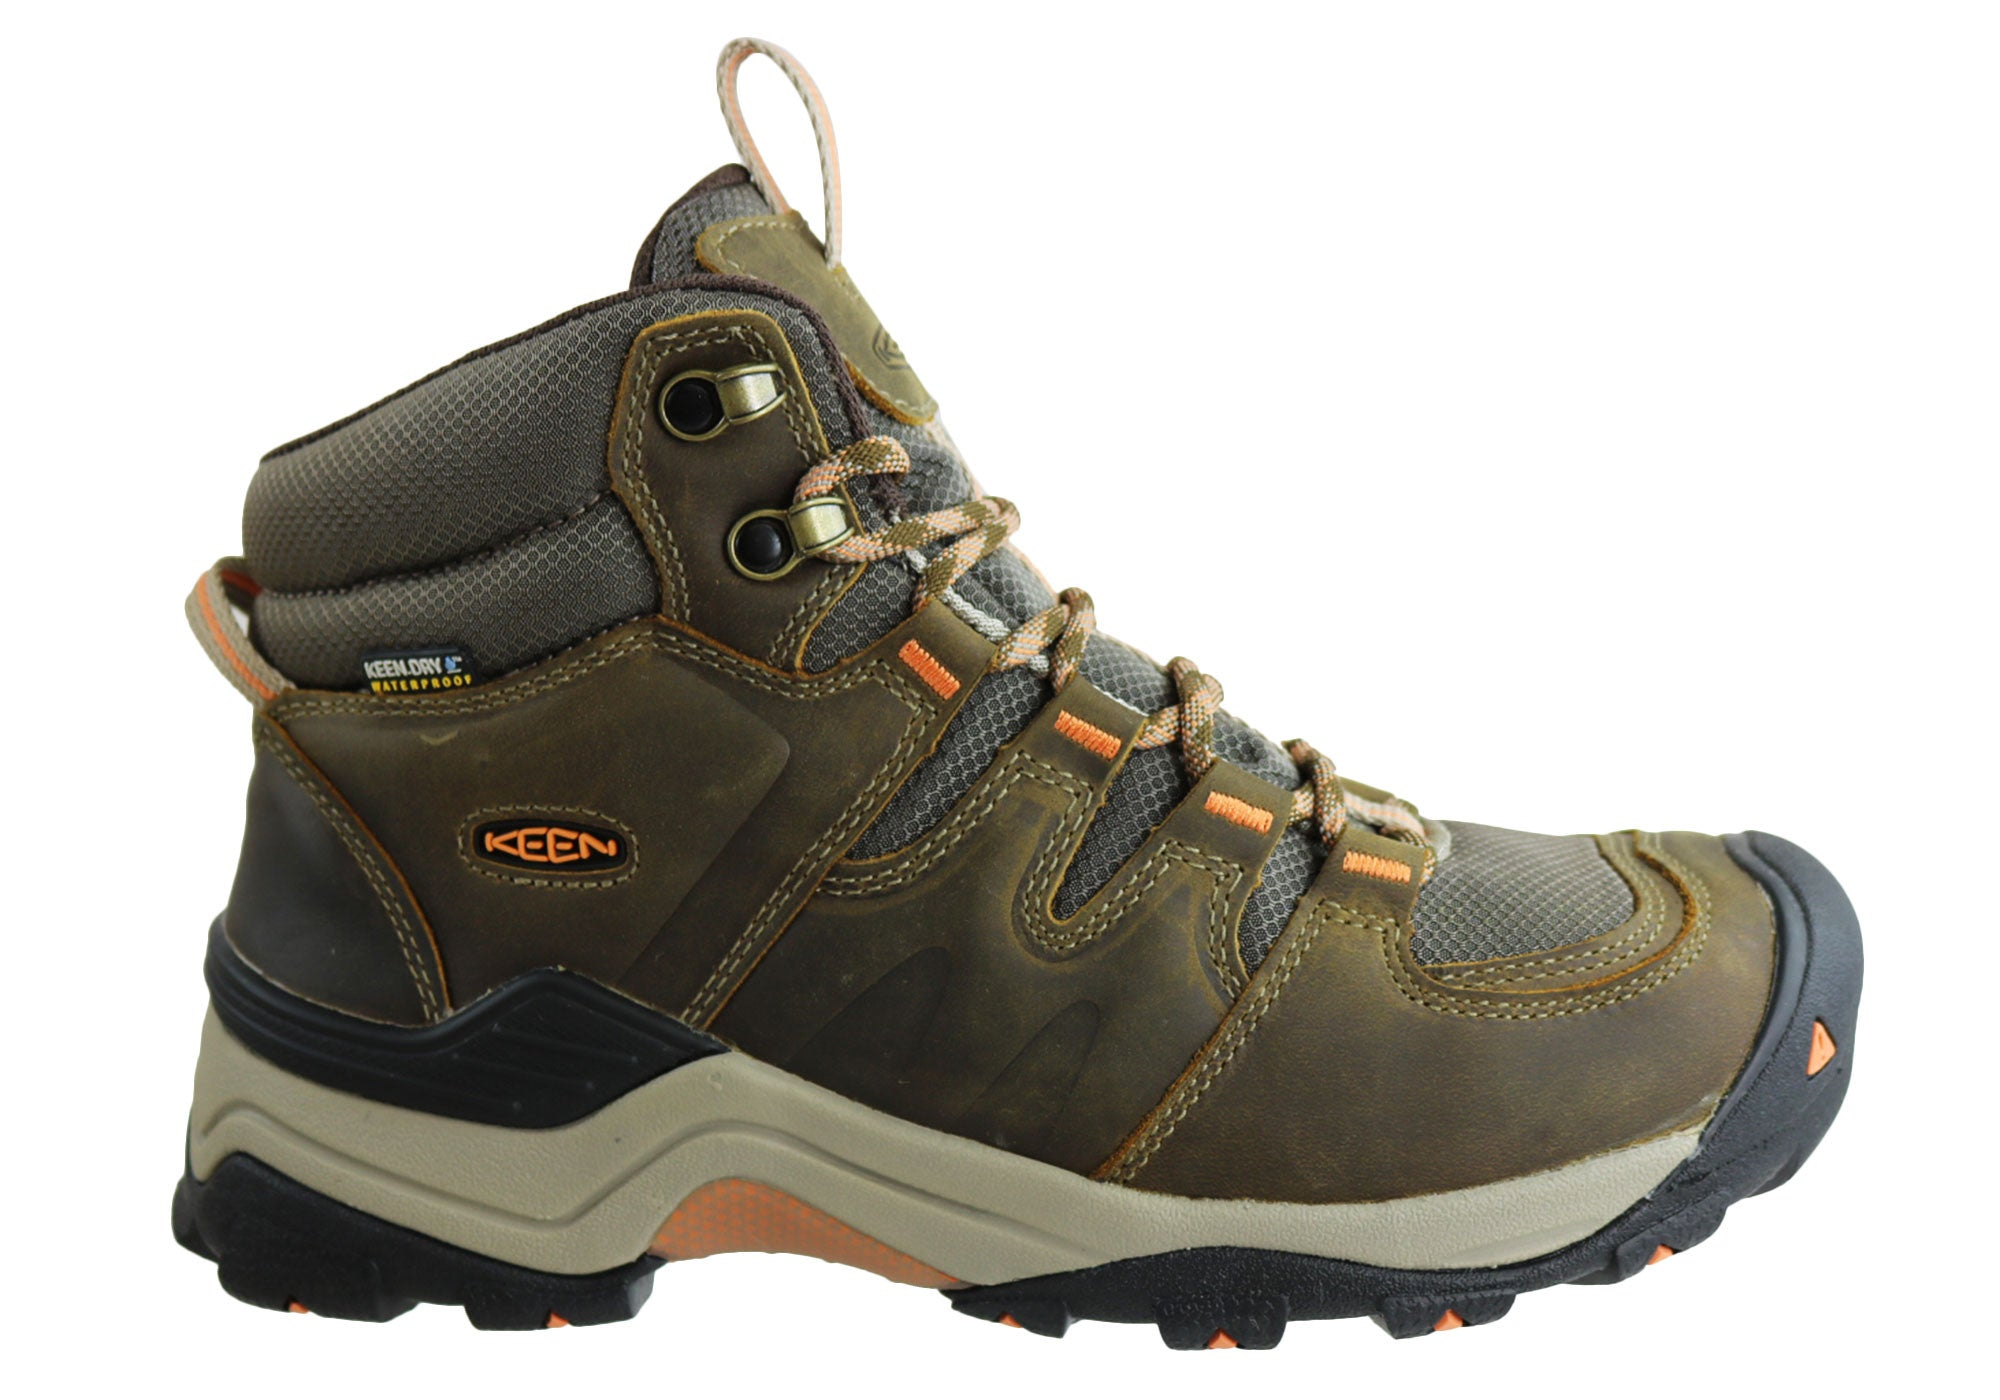 Keen Gypsum II Mid Waterproof Womens Wide Fit Hiking Boots  8e436cac26